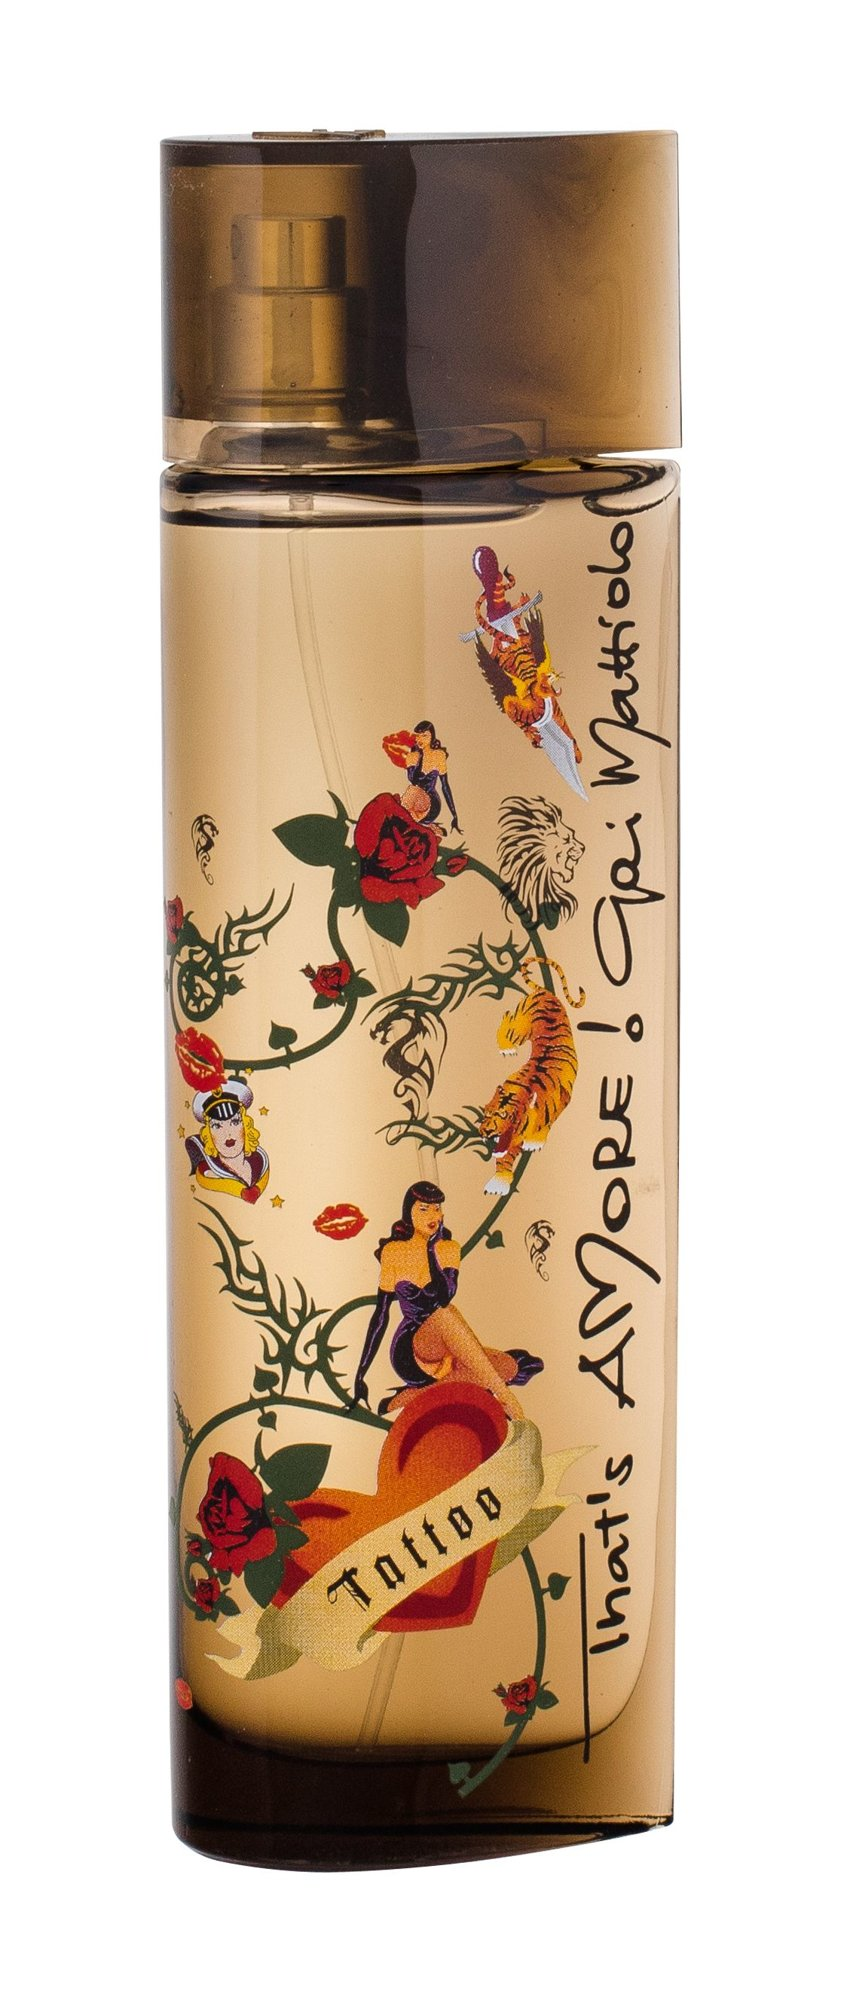 Gai Mattiolo That´s Amore! Tattoo Lui Eau de Toilette 75ml